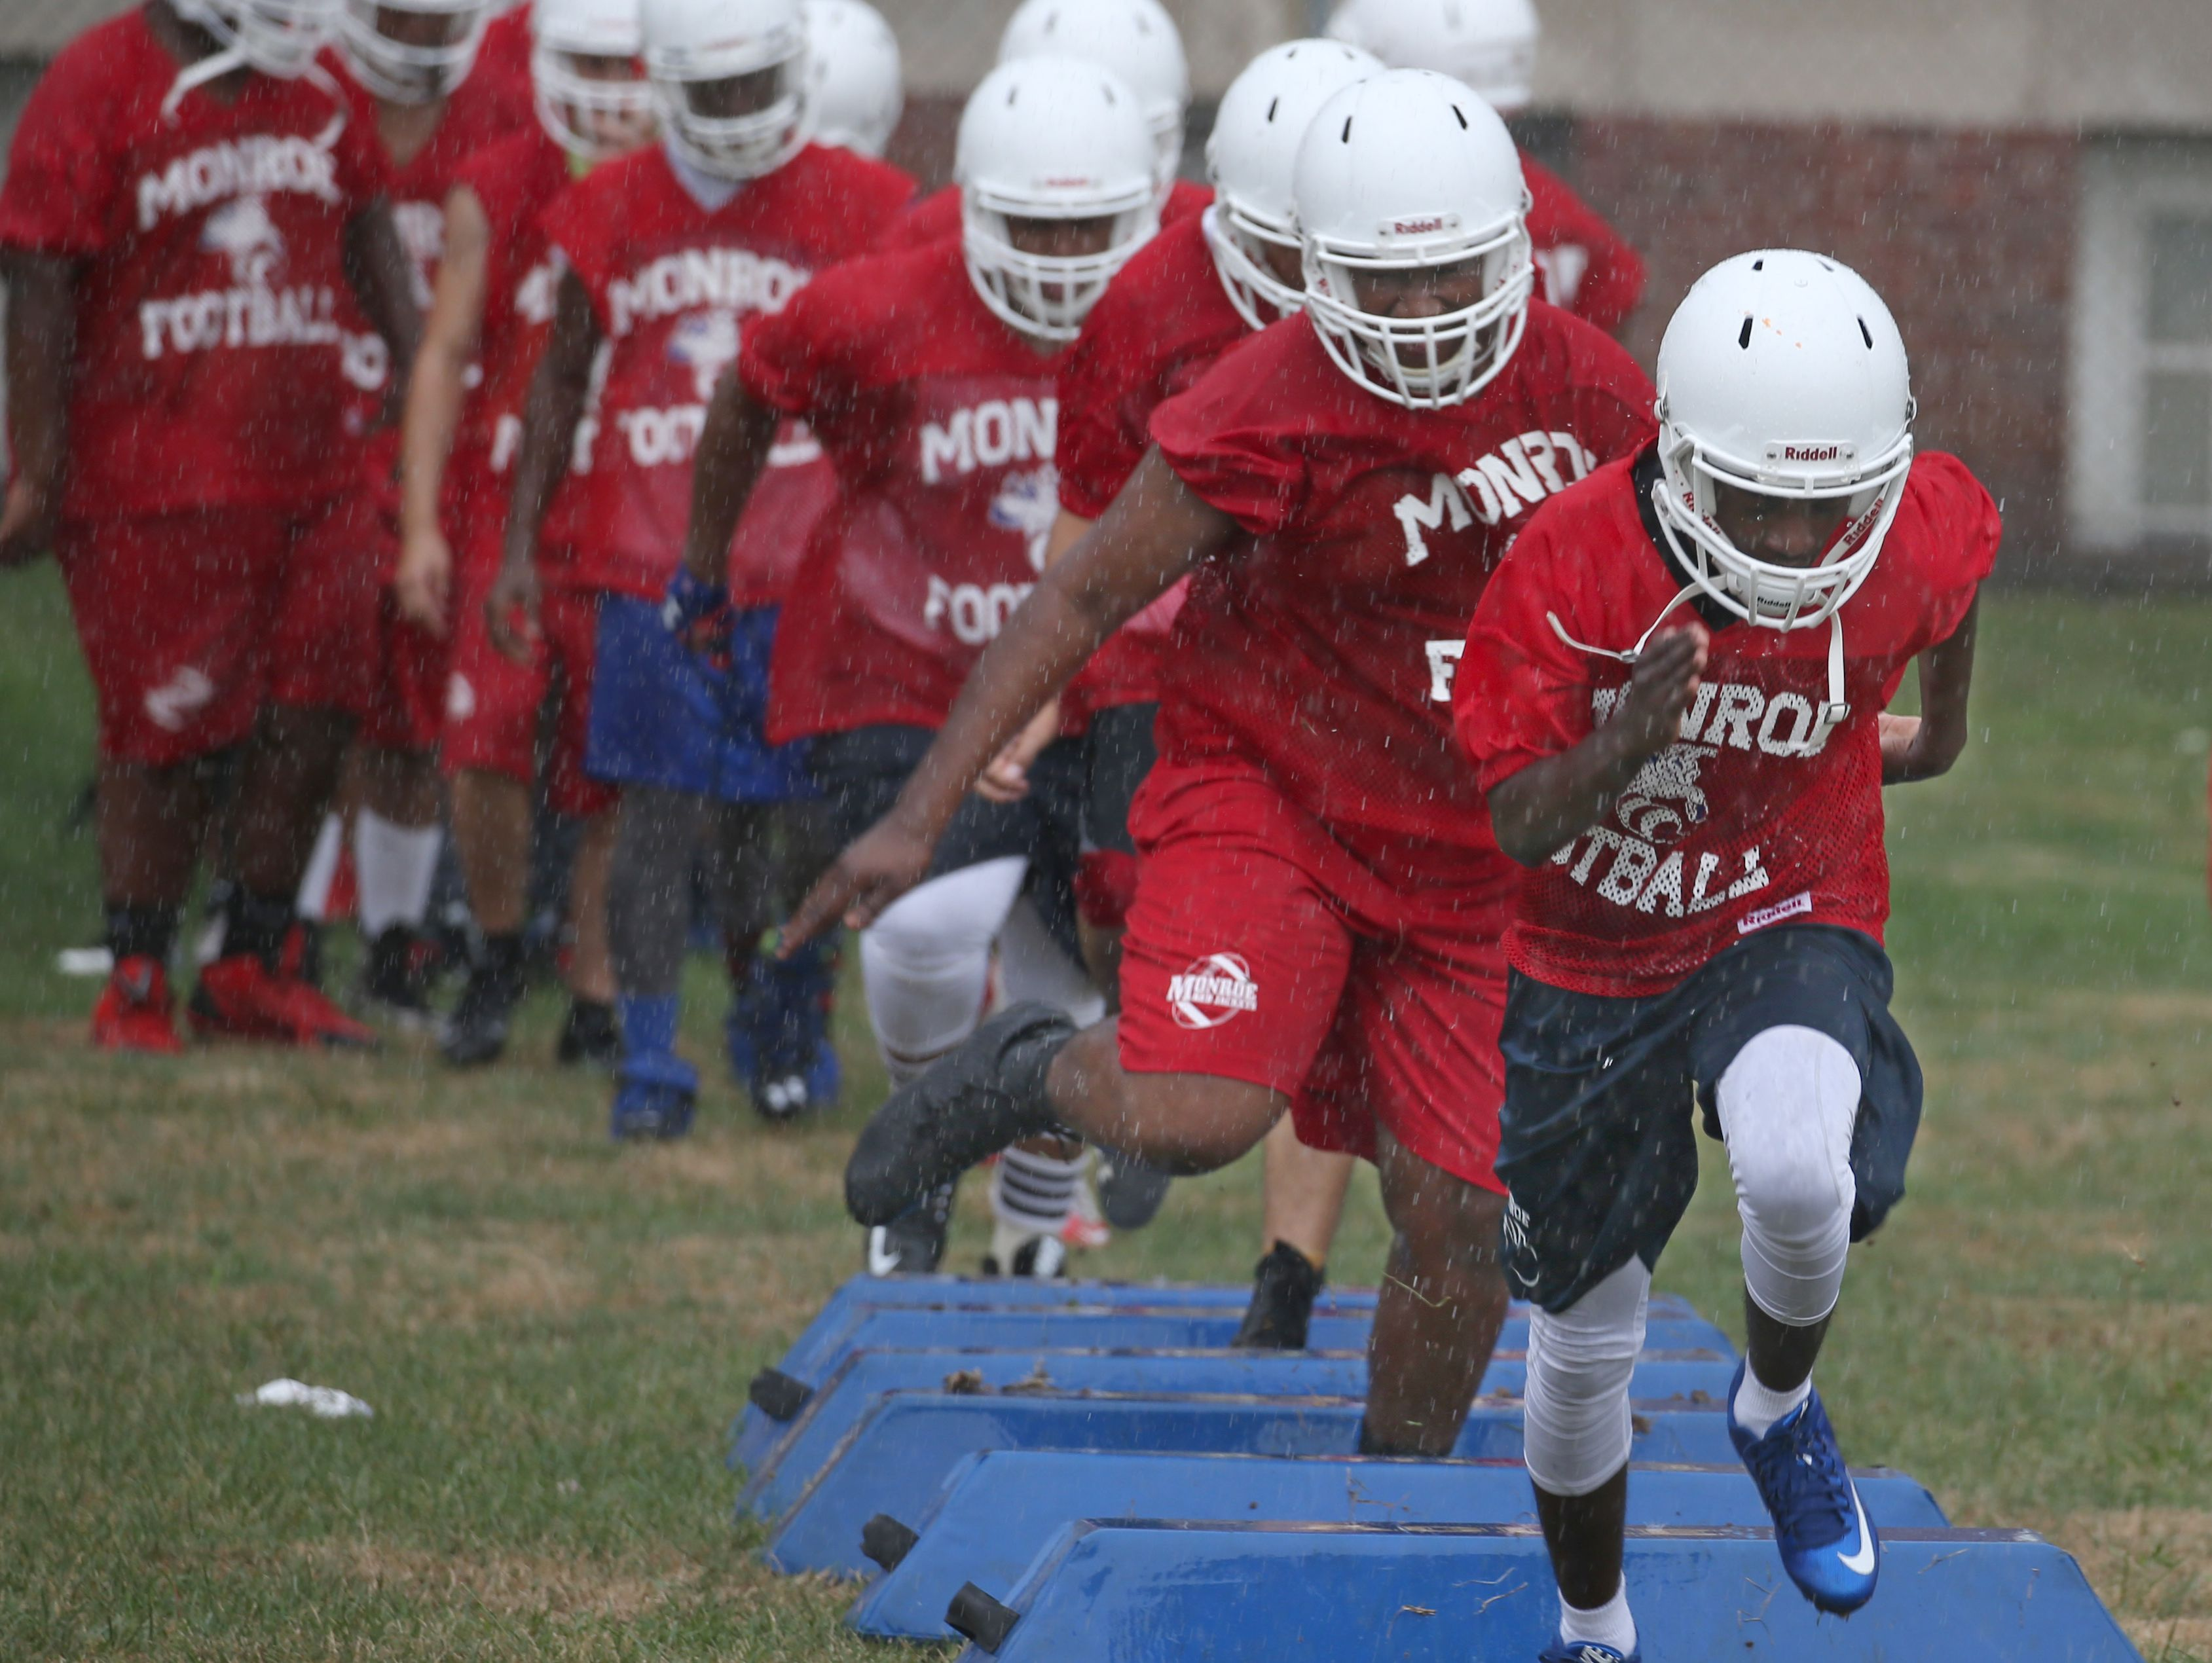 Monroe's John Washington, right, and DeAndre Hill lead the squad as they high-step through agility drills in the rain during varsity football practice at All City High on Ridgeway Avenue in Rochester Tuesday, Aug. 16, 2016.